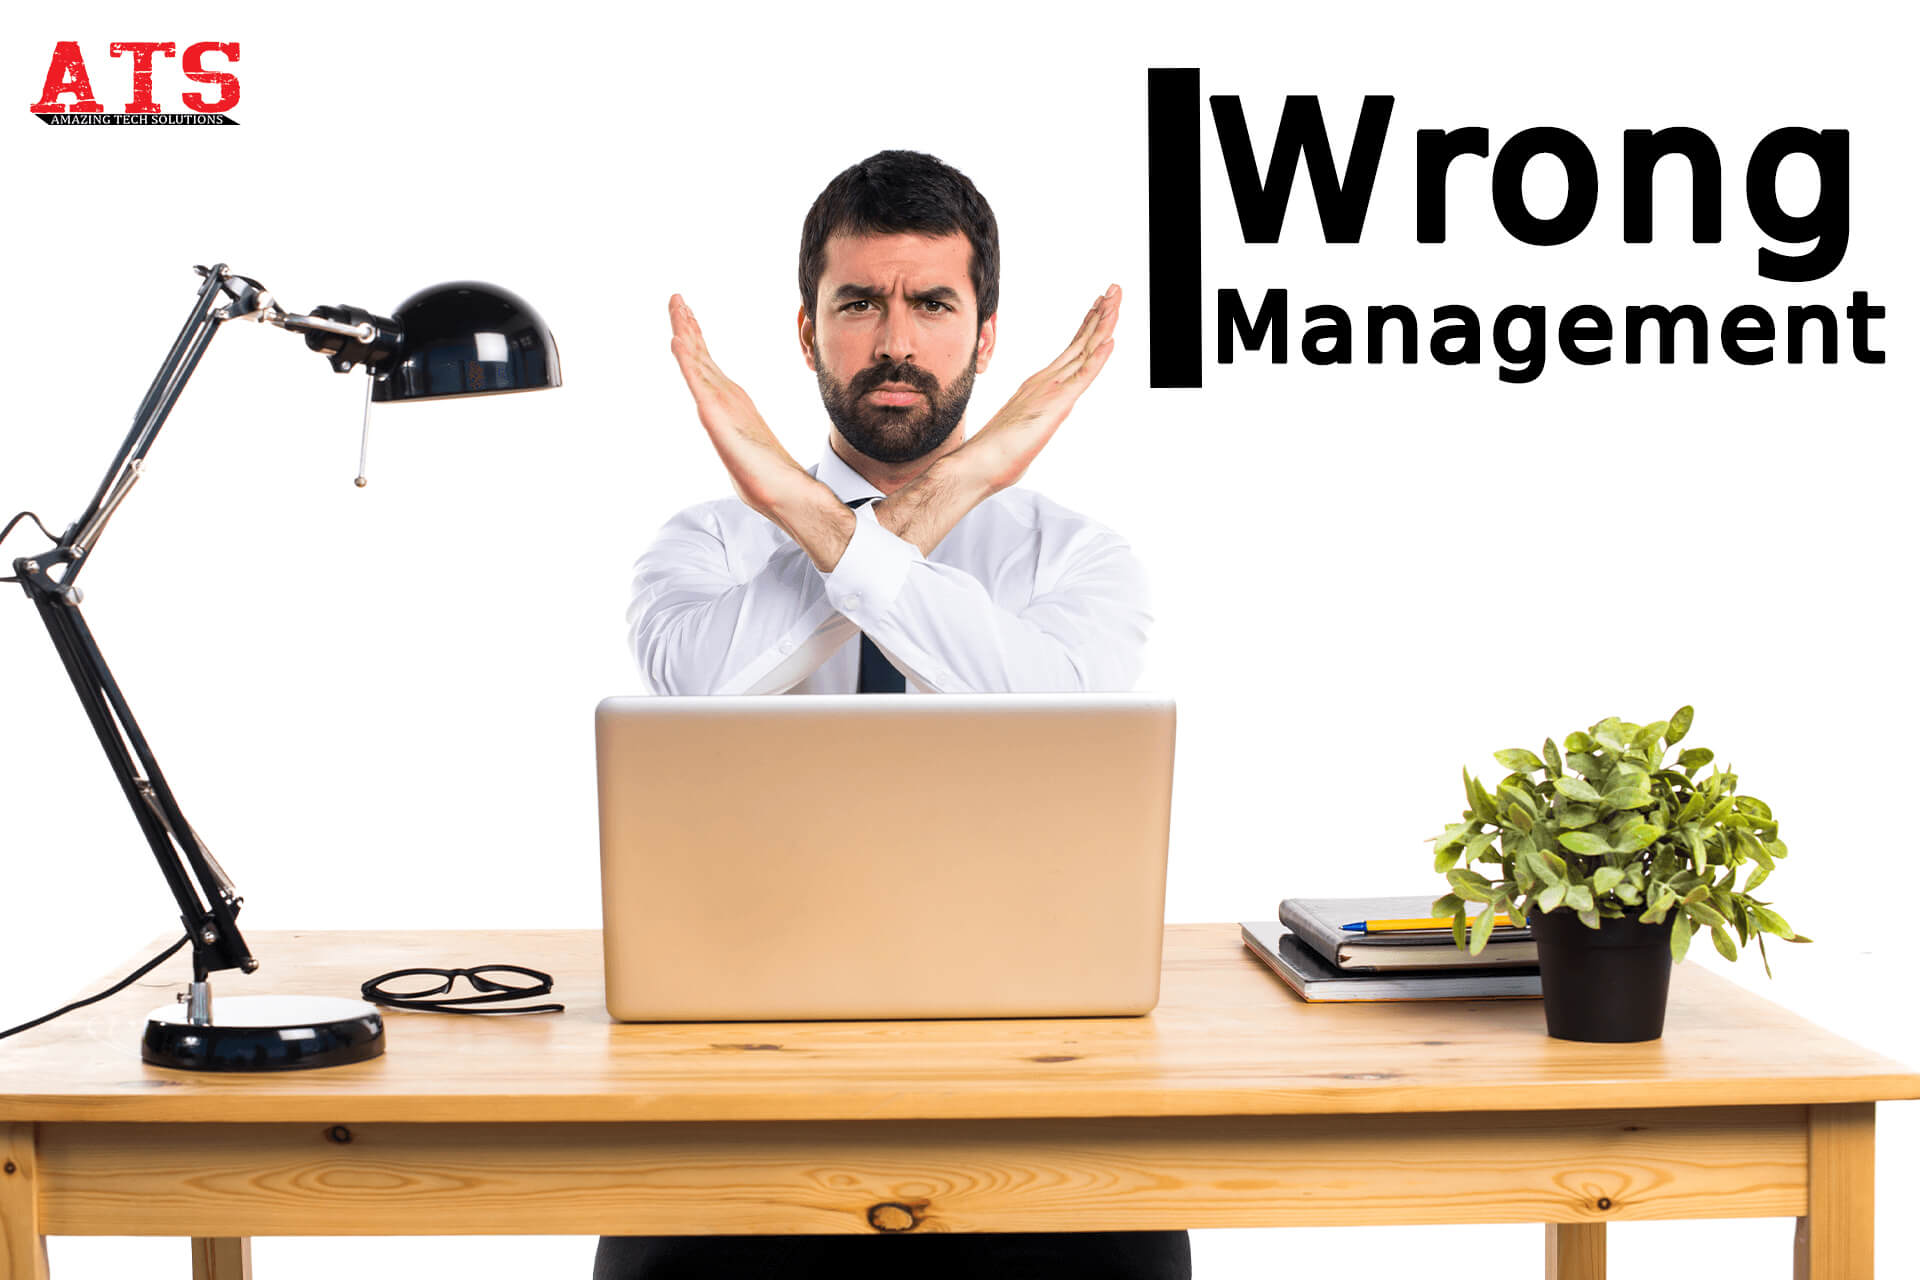 wrong management in businesses